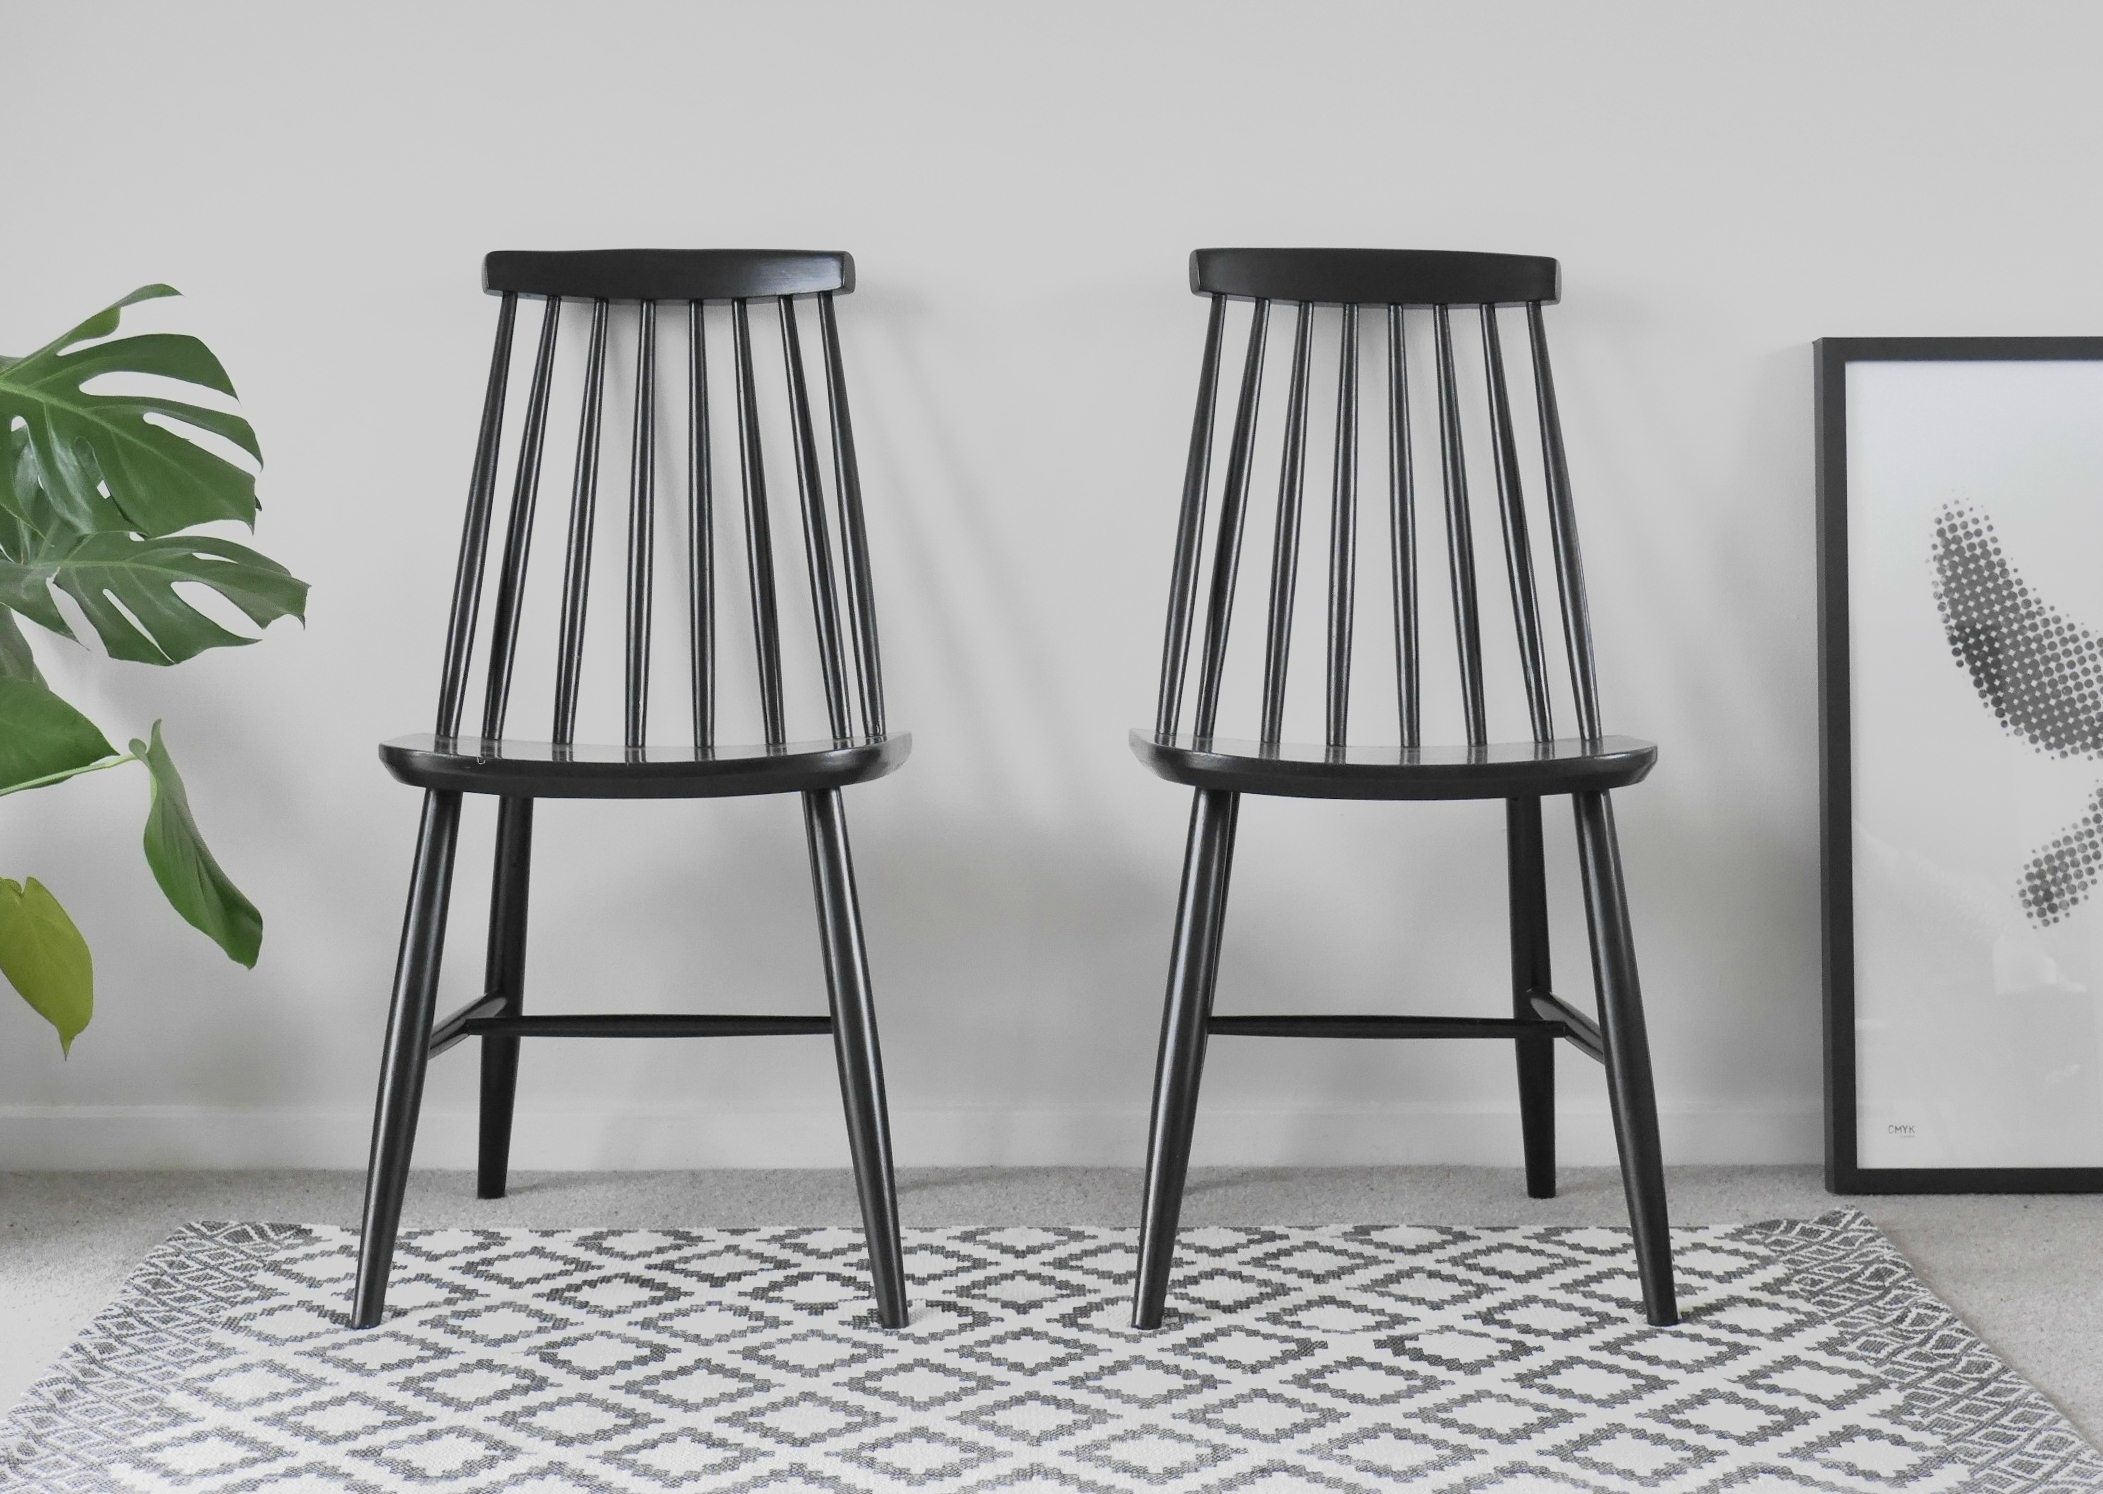 Strange Vintage Ercol Style Spindle Back Dining Chairs In Black Alphanode Cool Chair Designs And Ideas Alphanodeonline